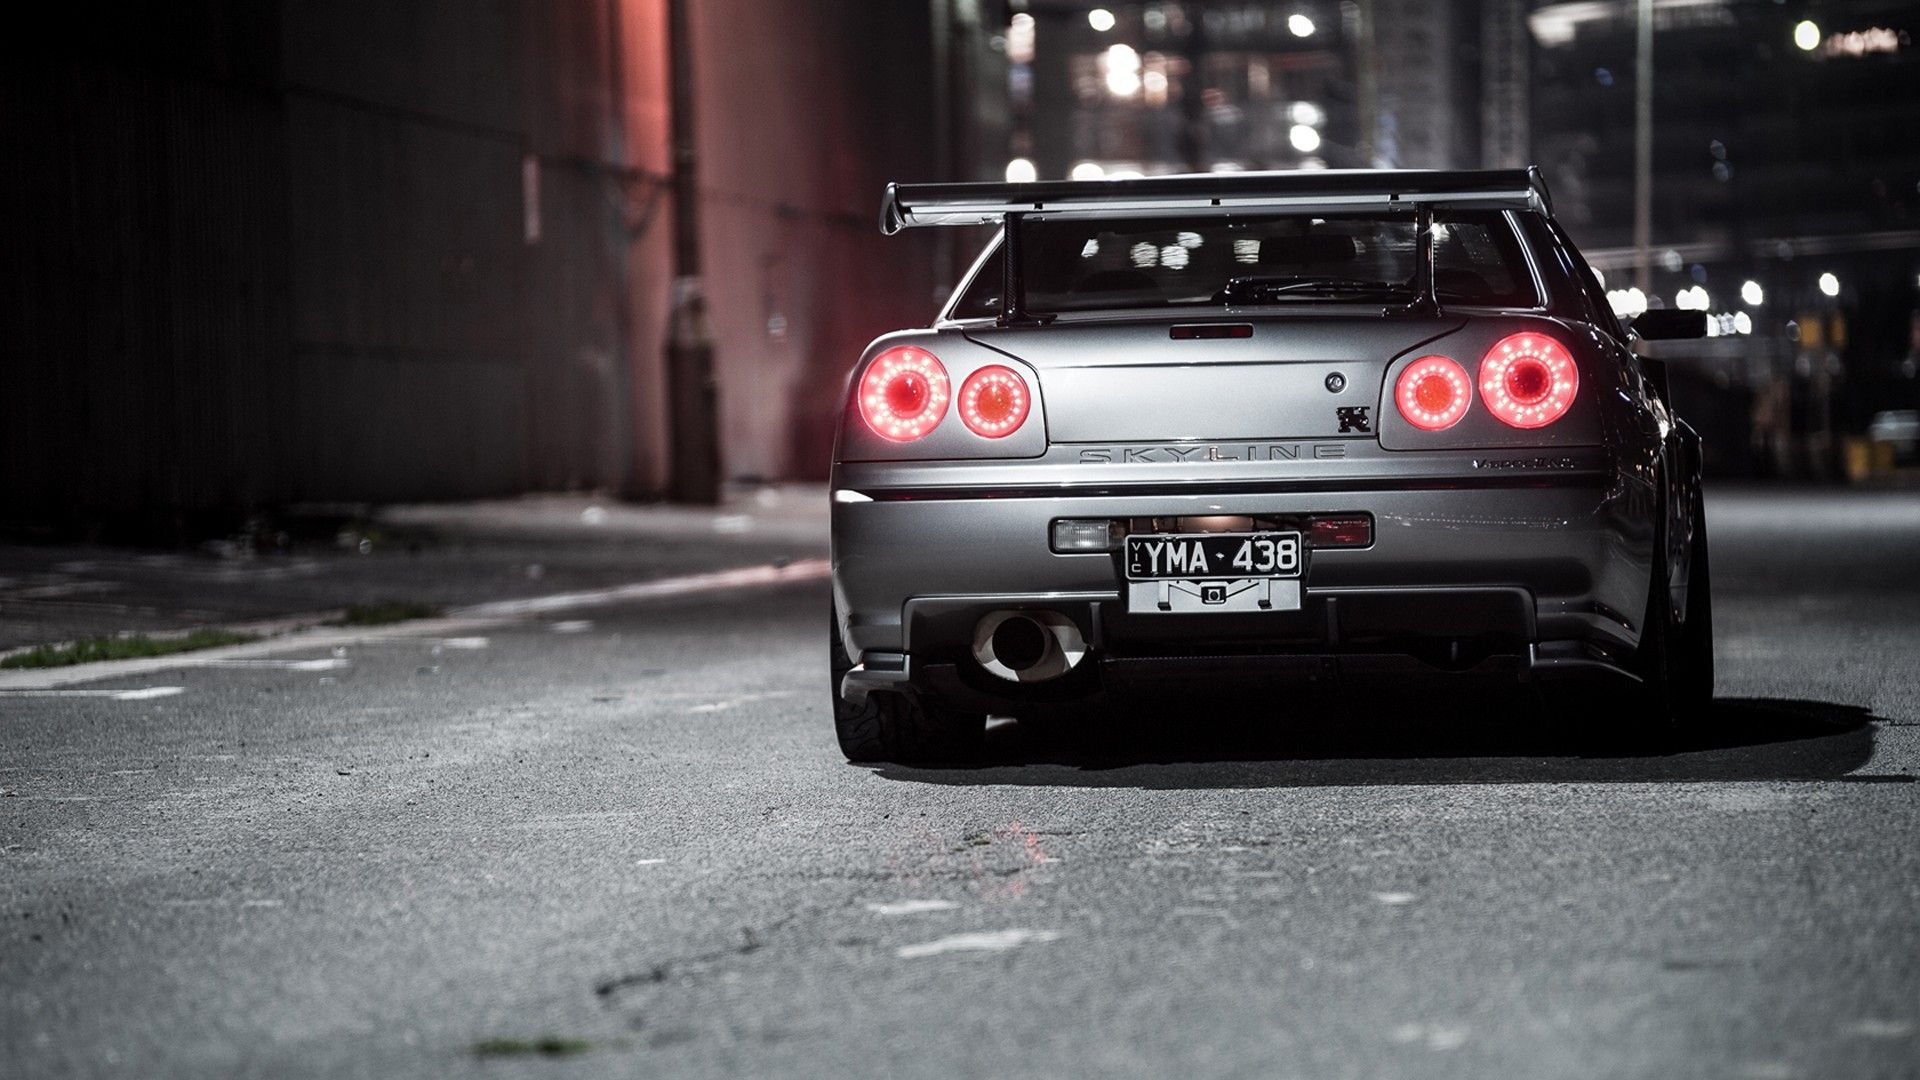 Skyline R34 Car Nissan Skyline Gt R Silver Cars Vehicle